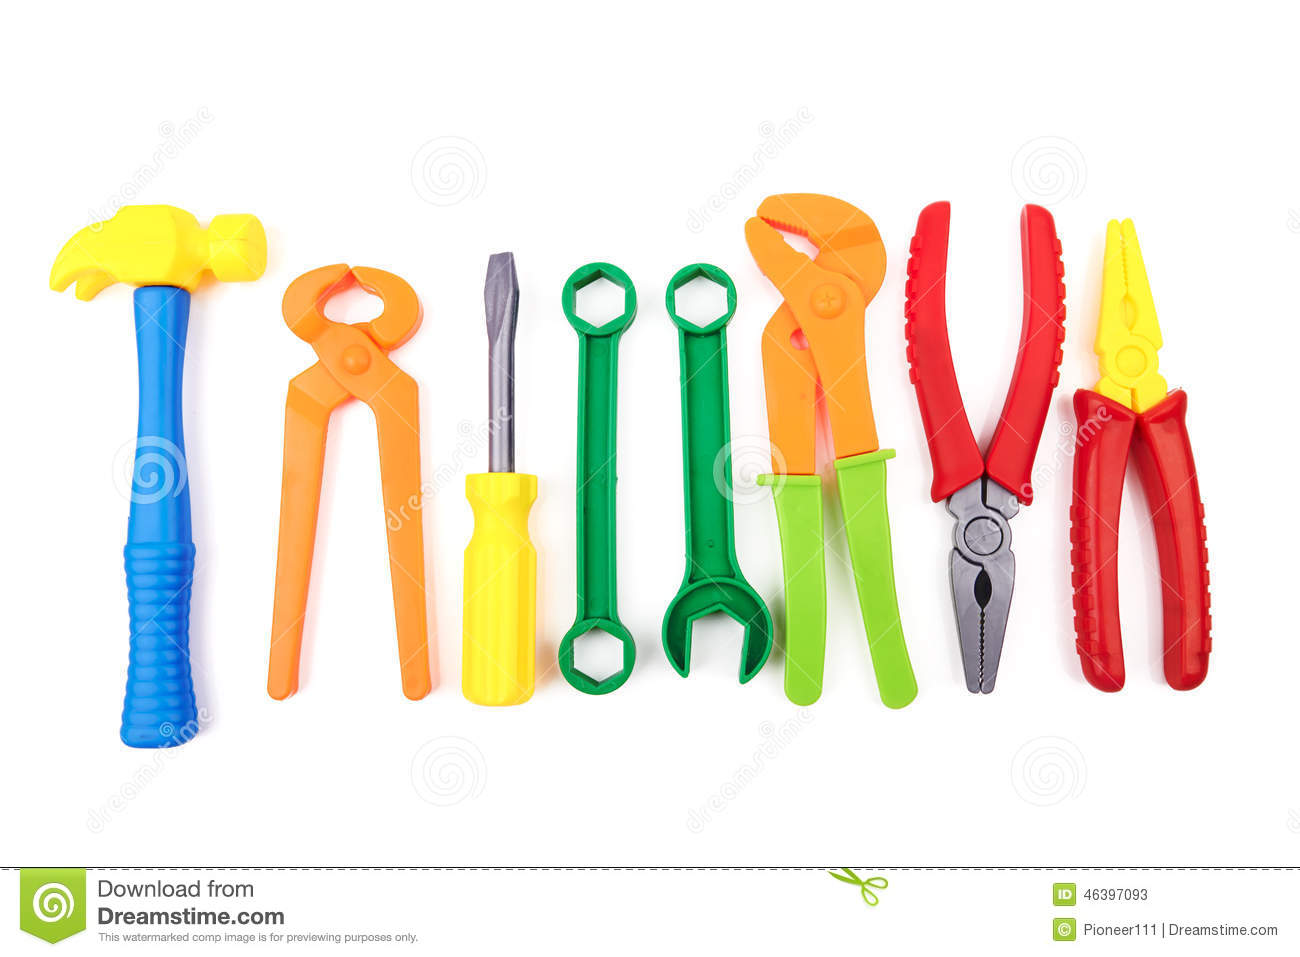 Plastic Toy Tools : Toy tools stock image of worker work forceps